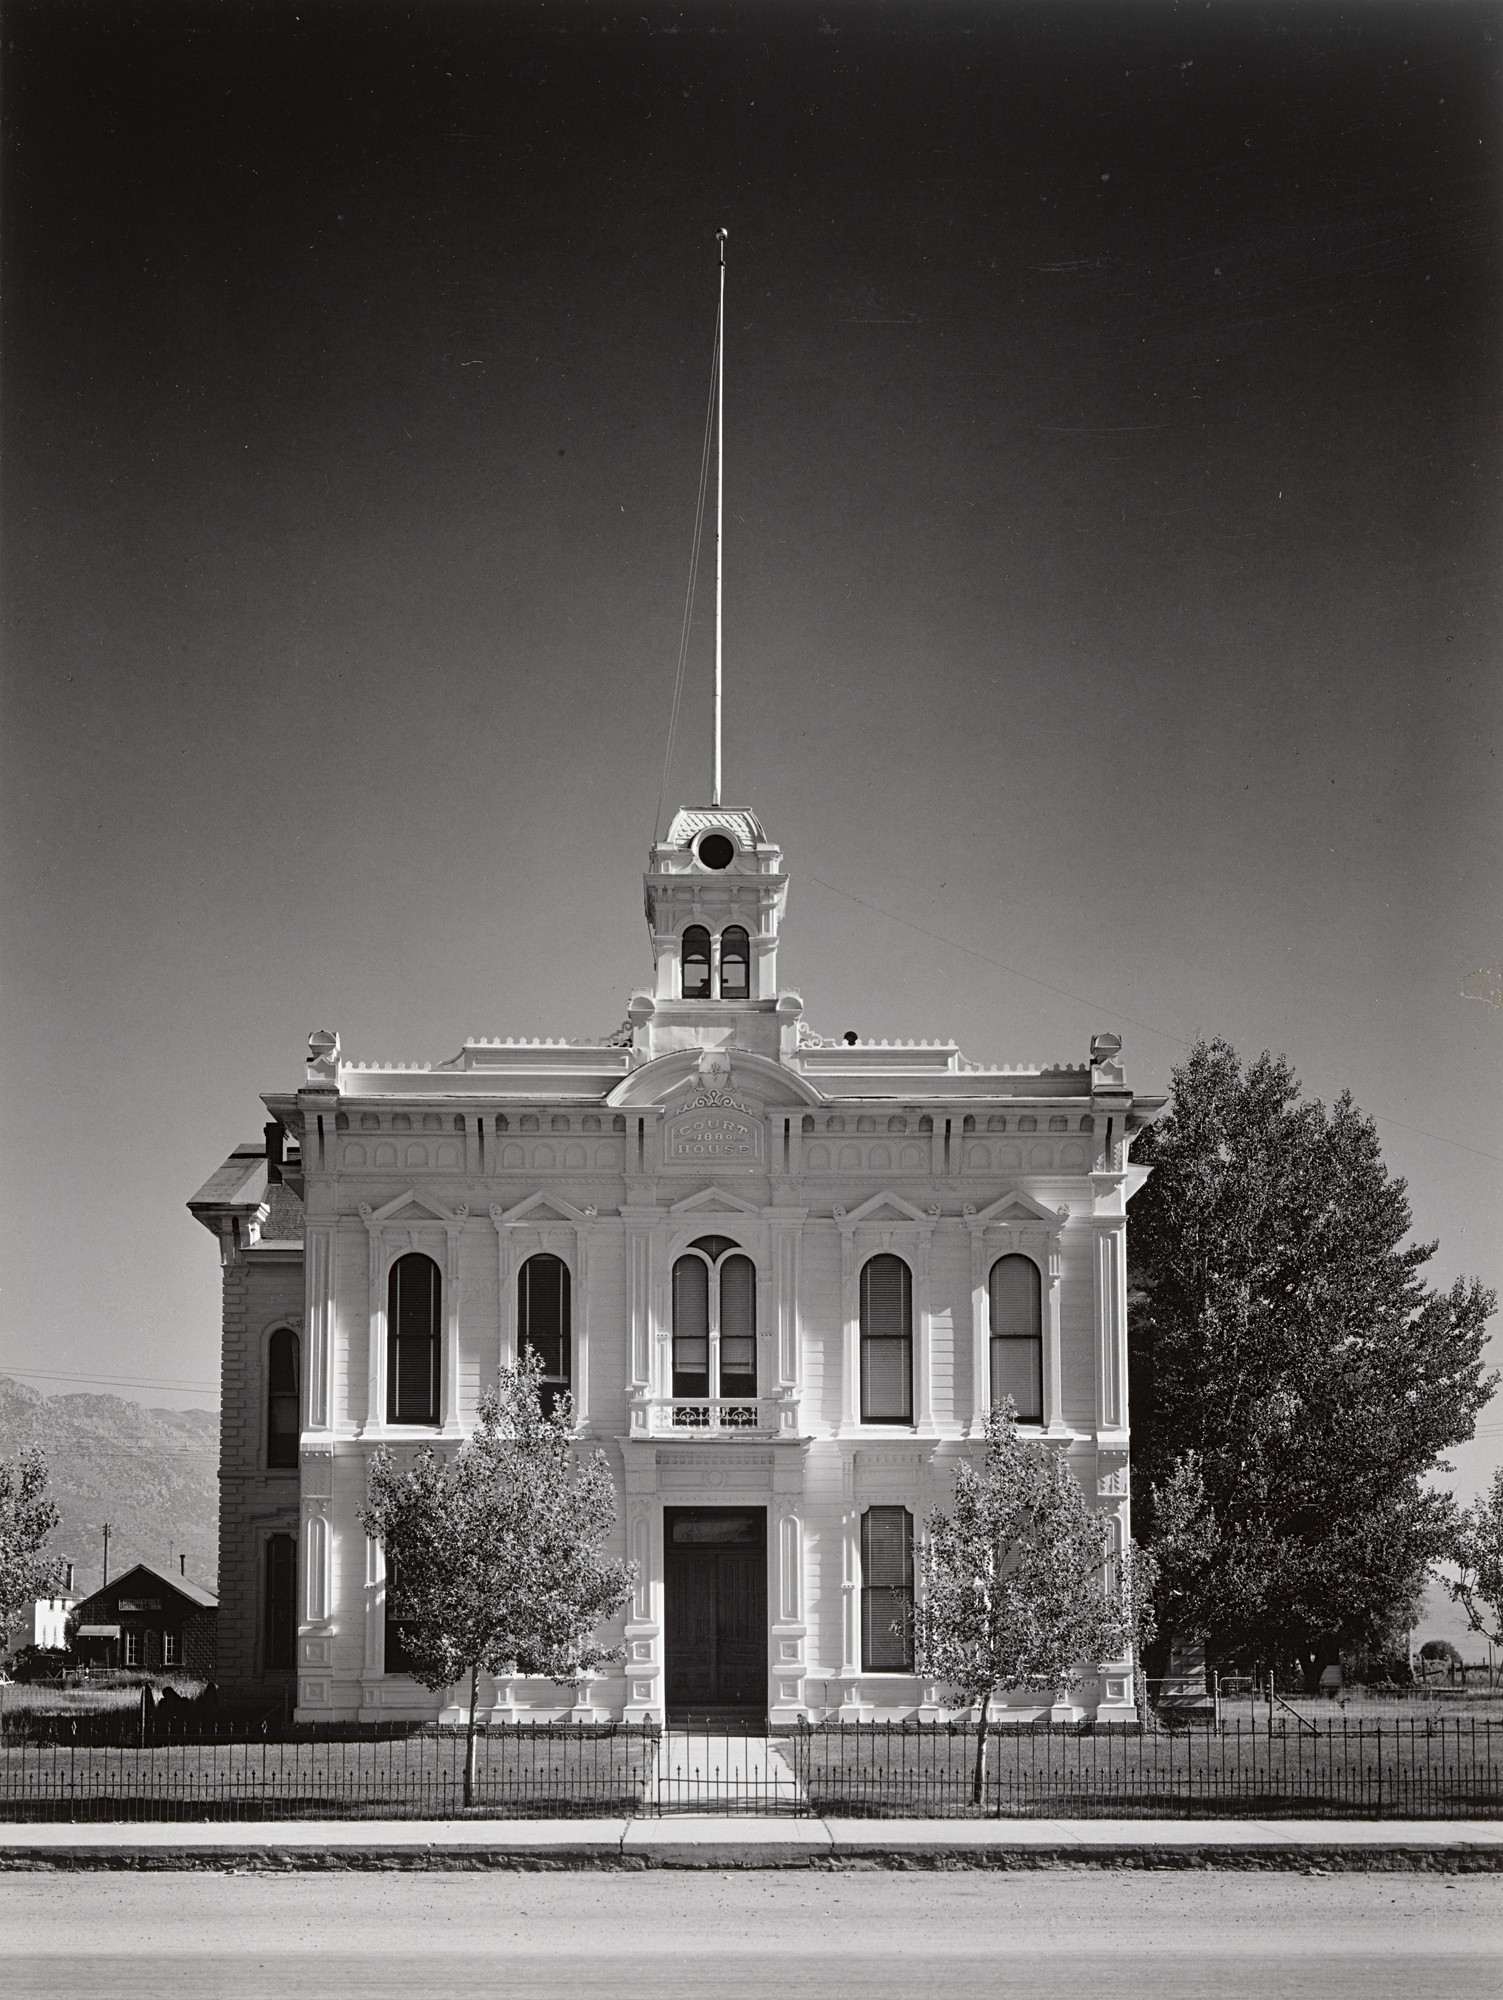 Ansel Adams. Courthouse, Bridgeport, California. 1938